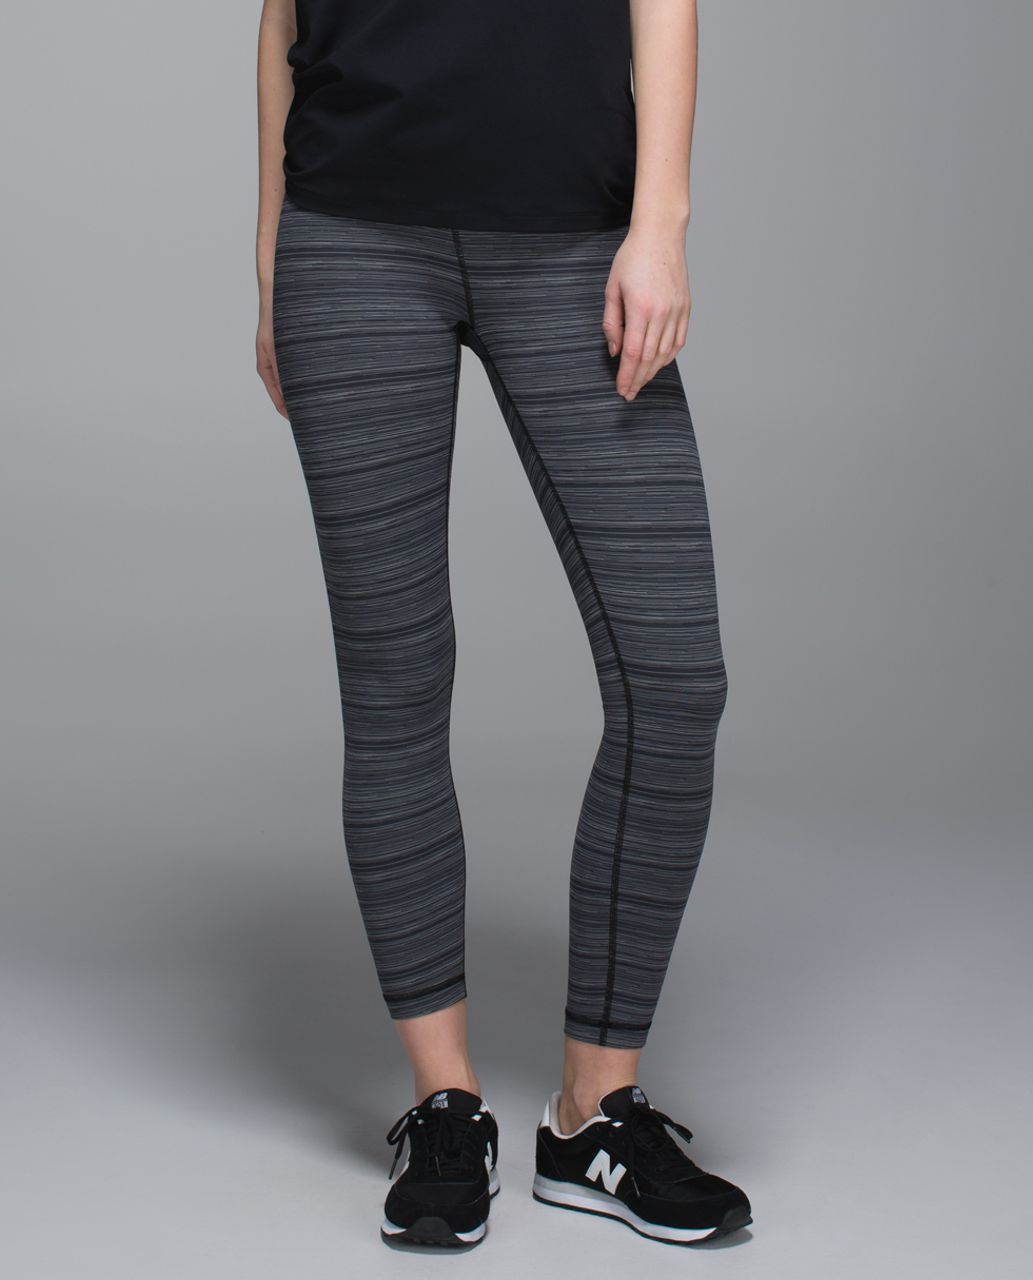 Lululemon High Times Pant *Luxtreme - Cyber Stripe Deep Coal Black